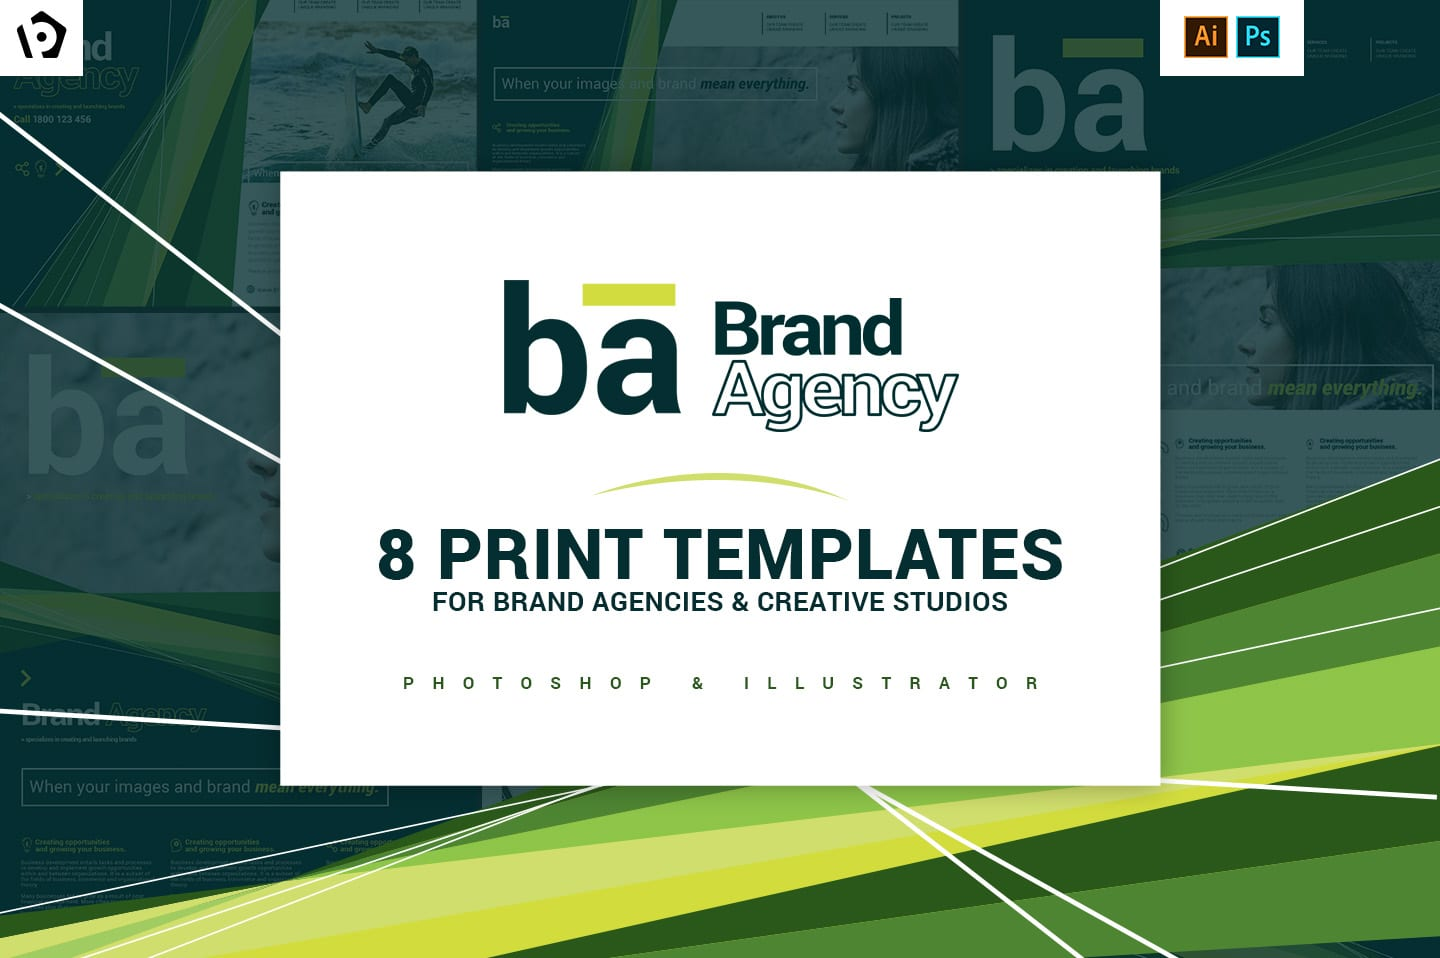 Brand Agency Templates Pack